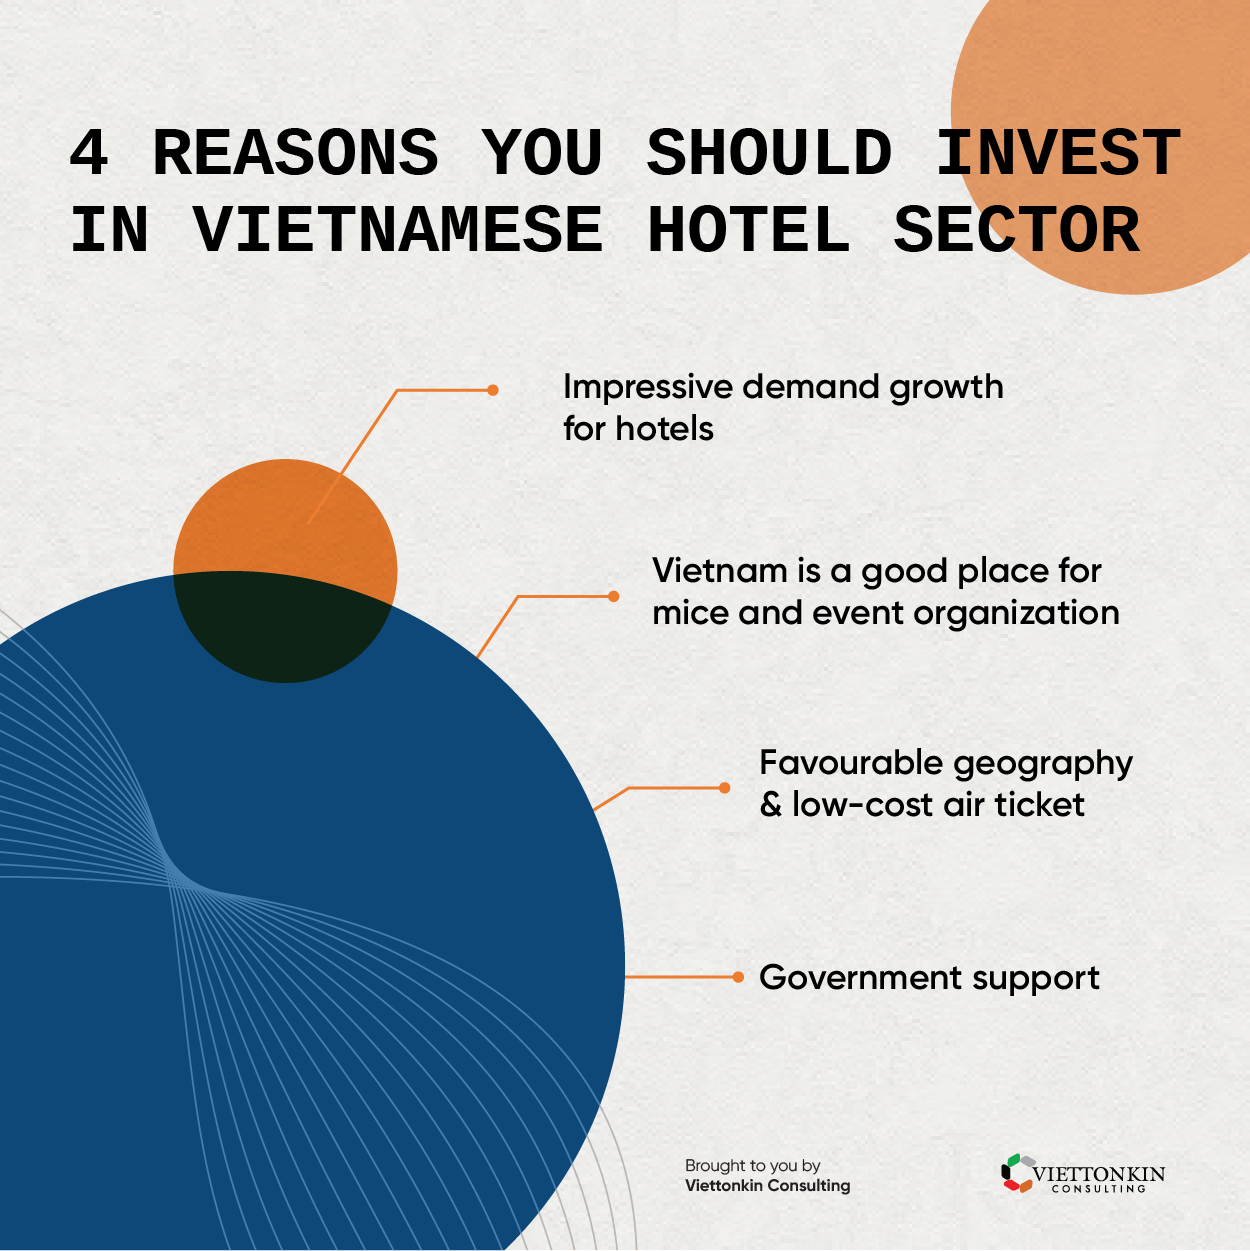 4 reasons you should invest in vietnamese hotel sector